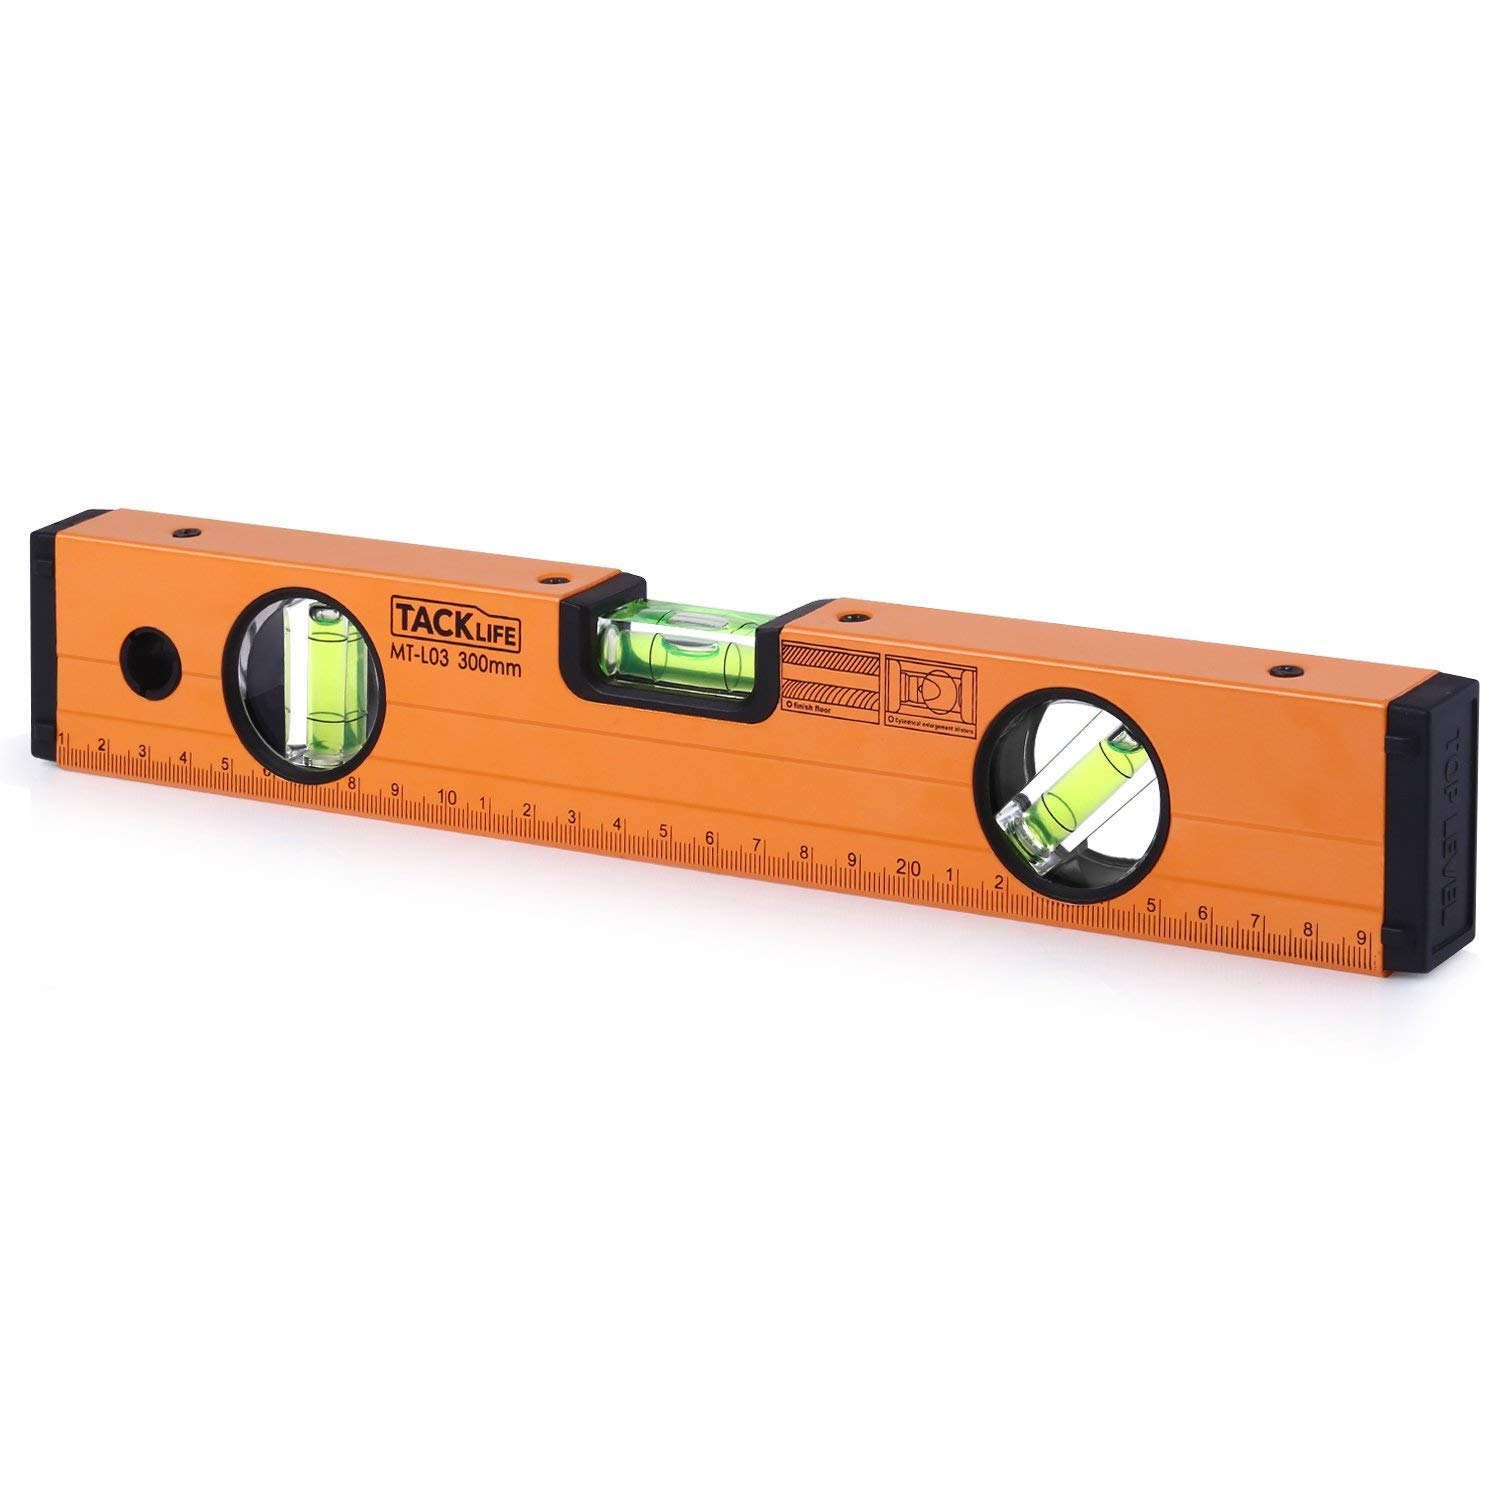 TACKLIFE Level 12-Inch Aluminum Alloy Magnetic Torpedo Level Plumb/Level/45-Degree, Measuring Shock Resistant Spirit Level with Standard and Metric Rulers - MT-L03